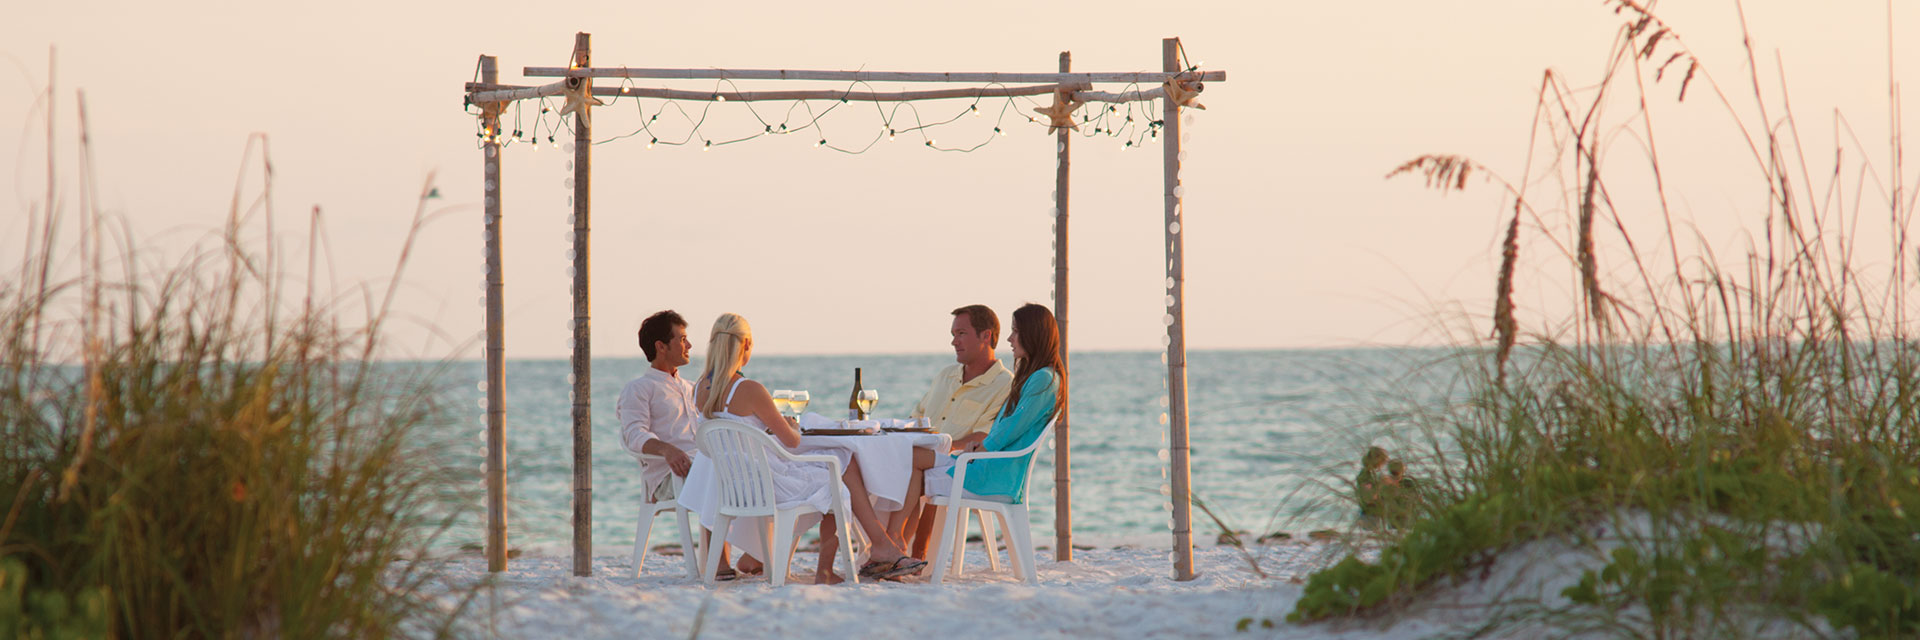 Two couples beach dining.